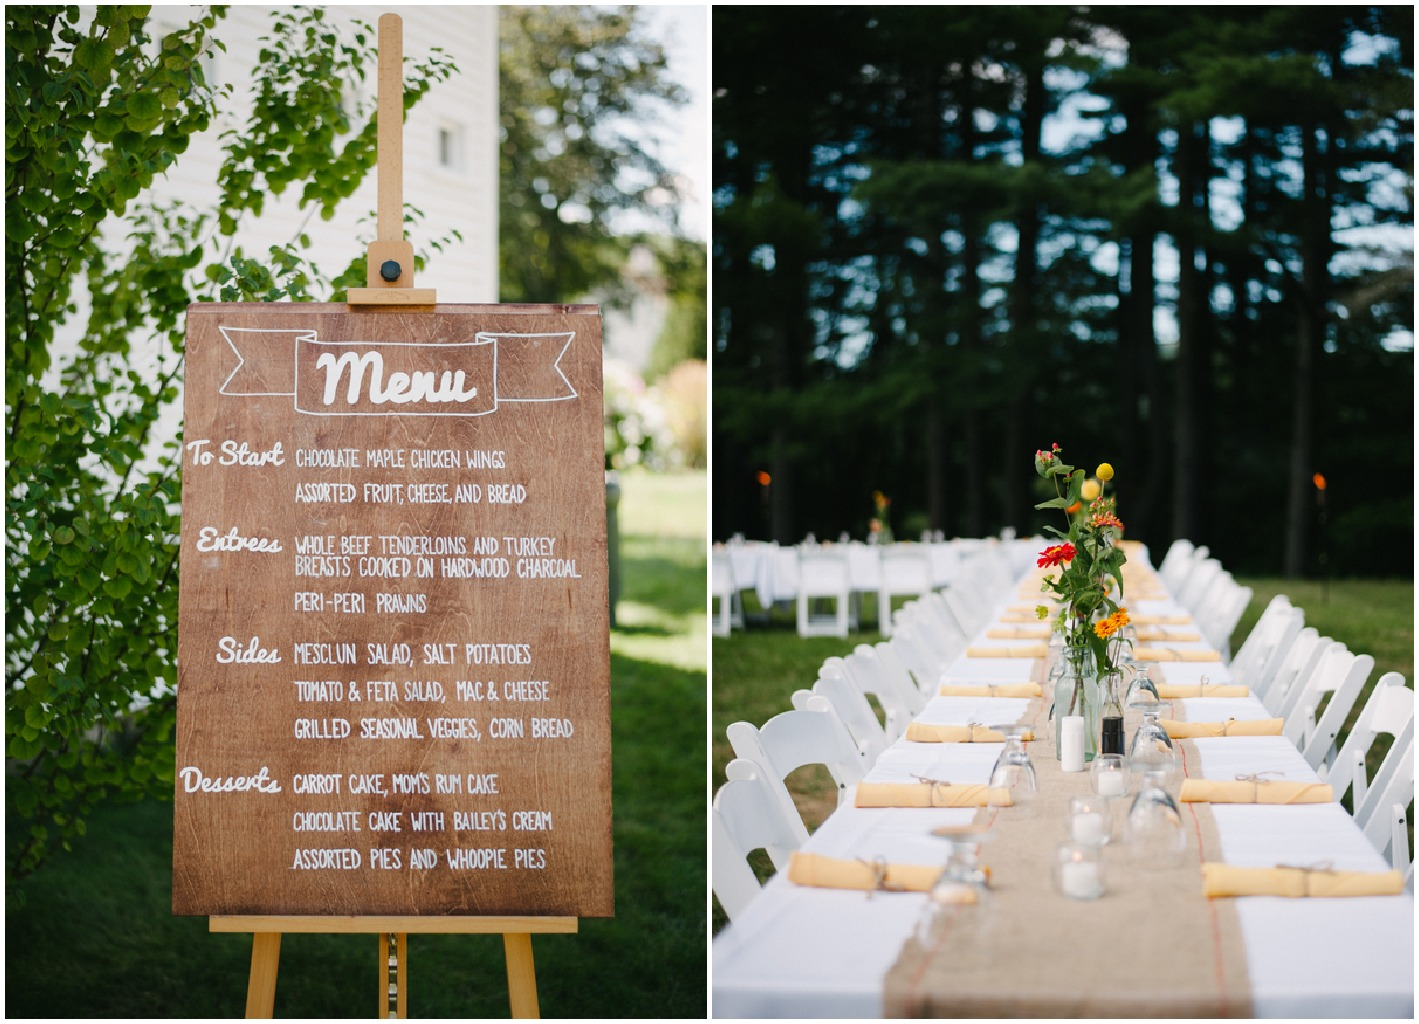 Rustic Backyard Wedding Reception Ideas : Pin Backyard Weddings Rustic Country Wedding Ideas Decorations on